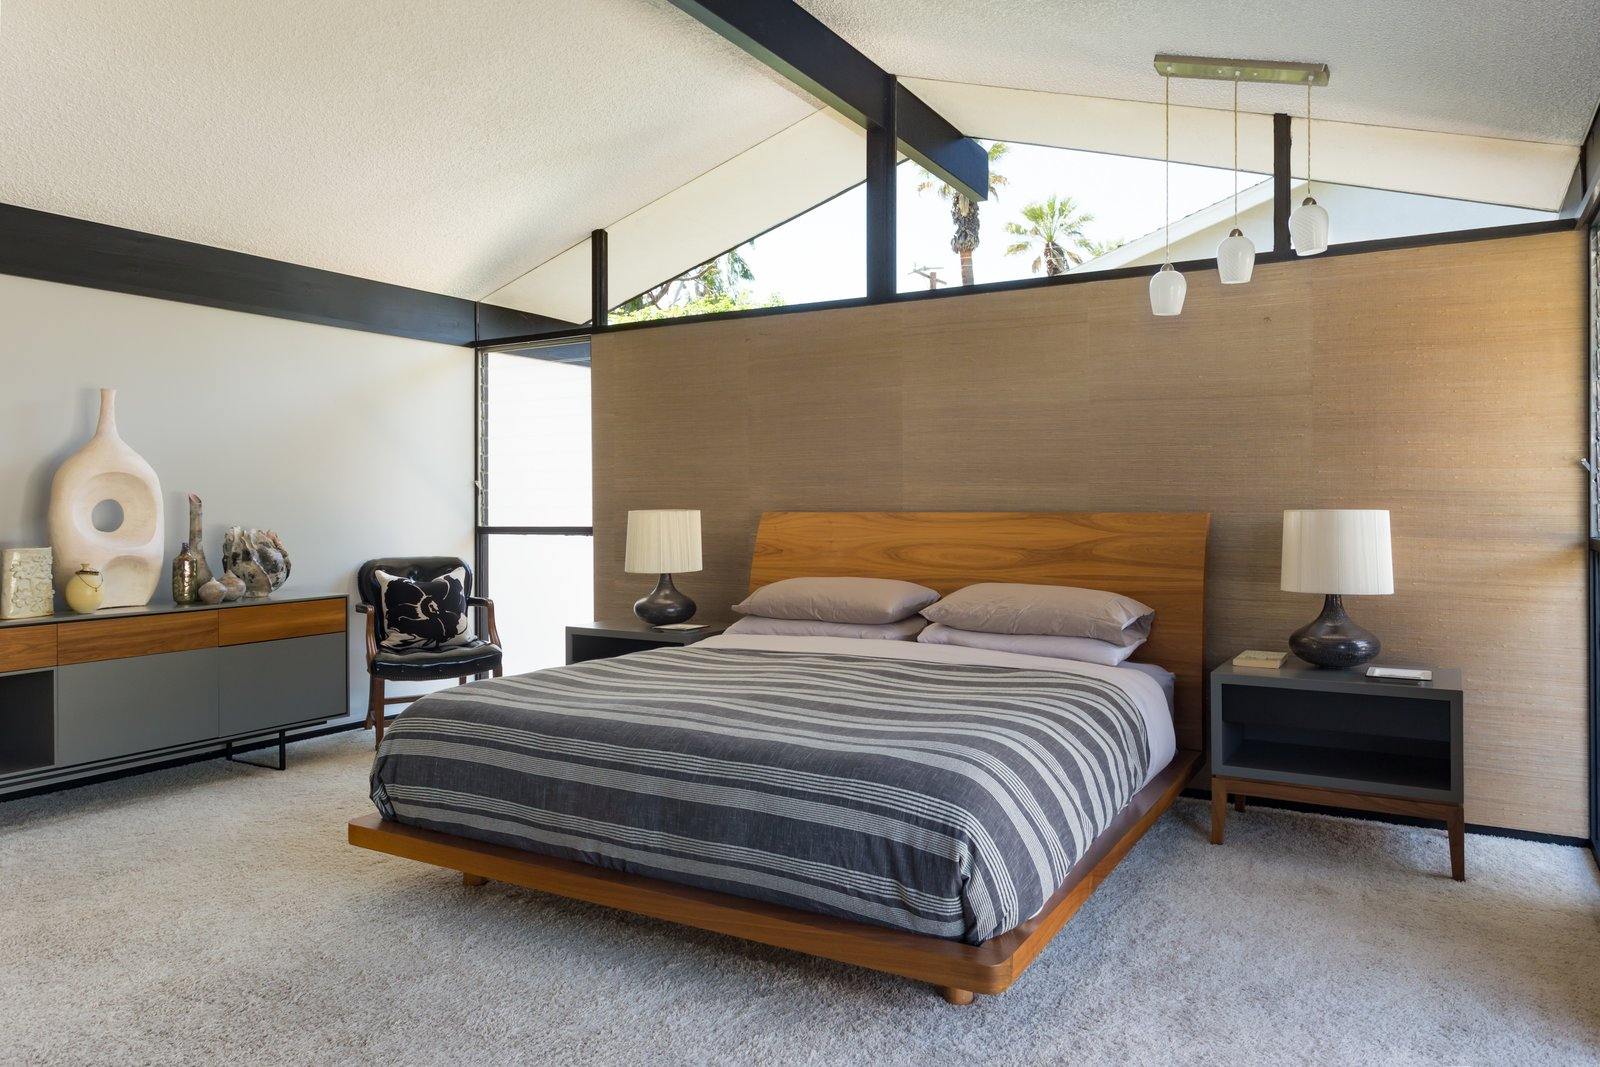 Bedroom, Dresser, Night Stands, Chair, Bed, Table Lighting, and Pendant Lighting  Photo 8 of 14 in Offered at $899K, a Restored Midcentury Abode Shines in Southern California